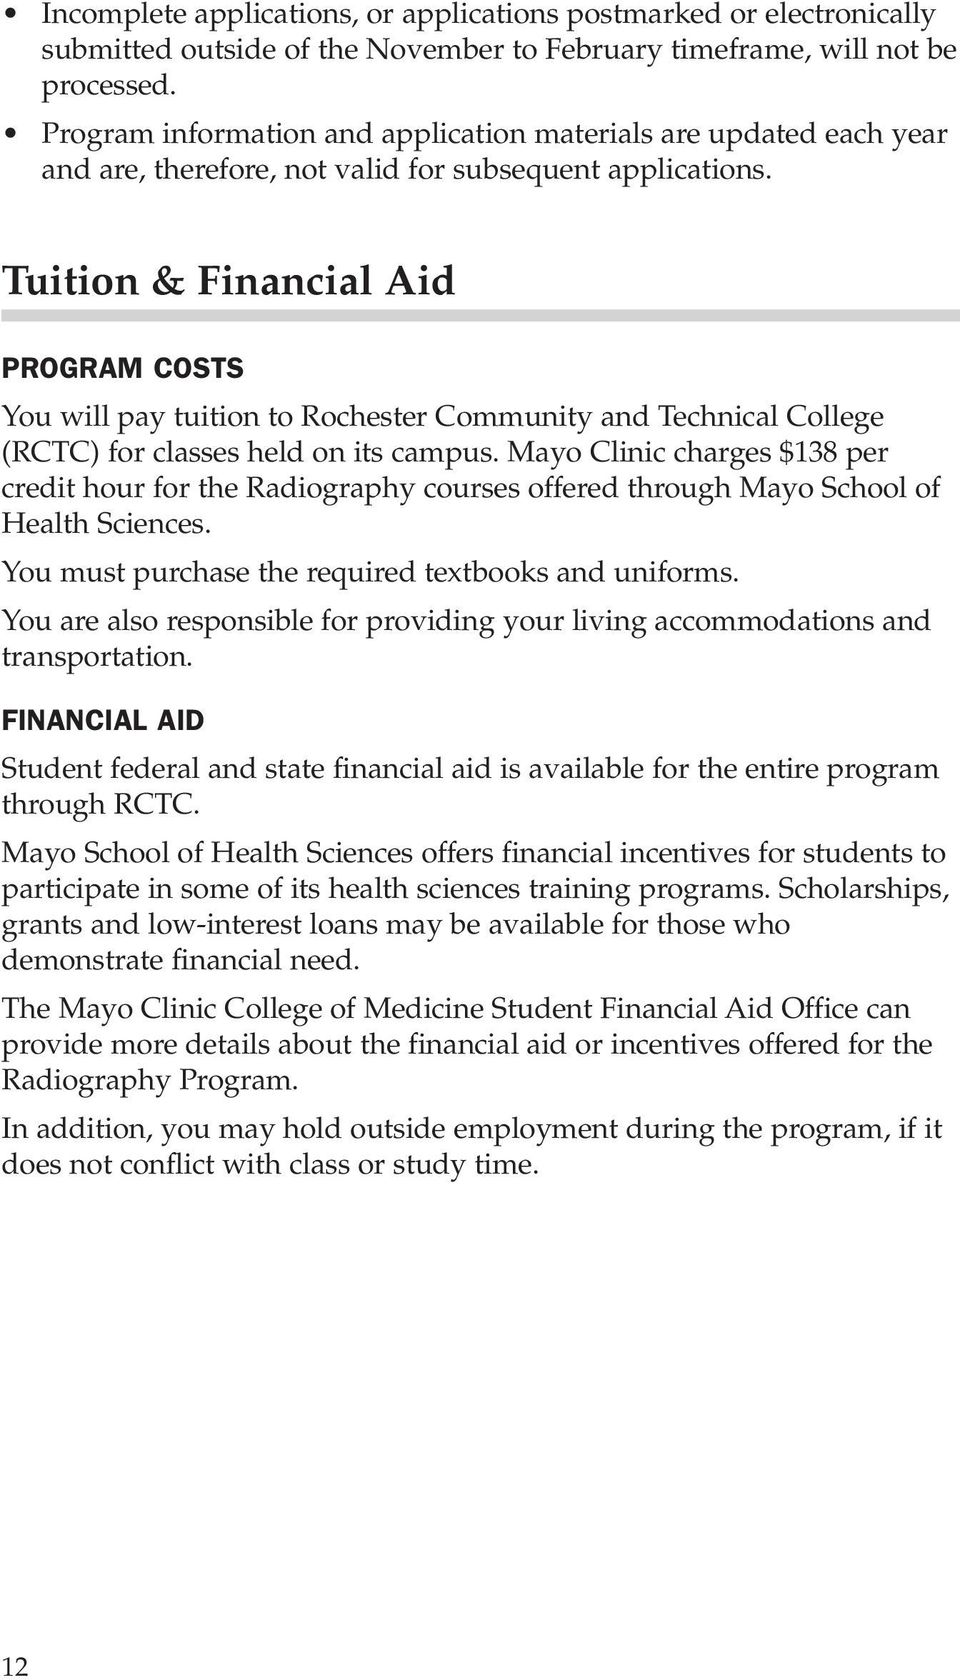 Tuition & Financial Aid PROGRAM COSTS You will pay tuition to Rochester Community and Technical College (RCTC) for classes held on its campus.